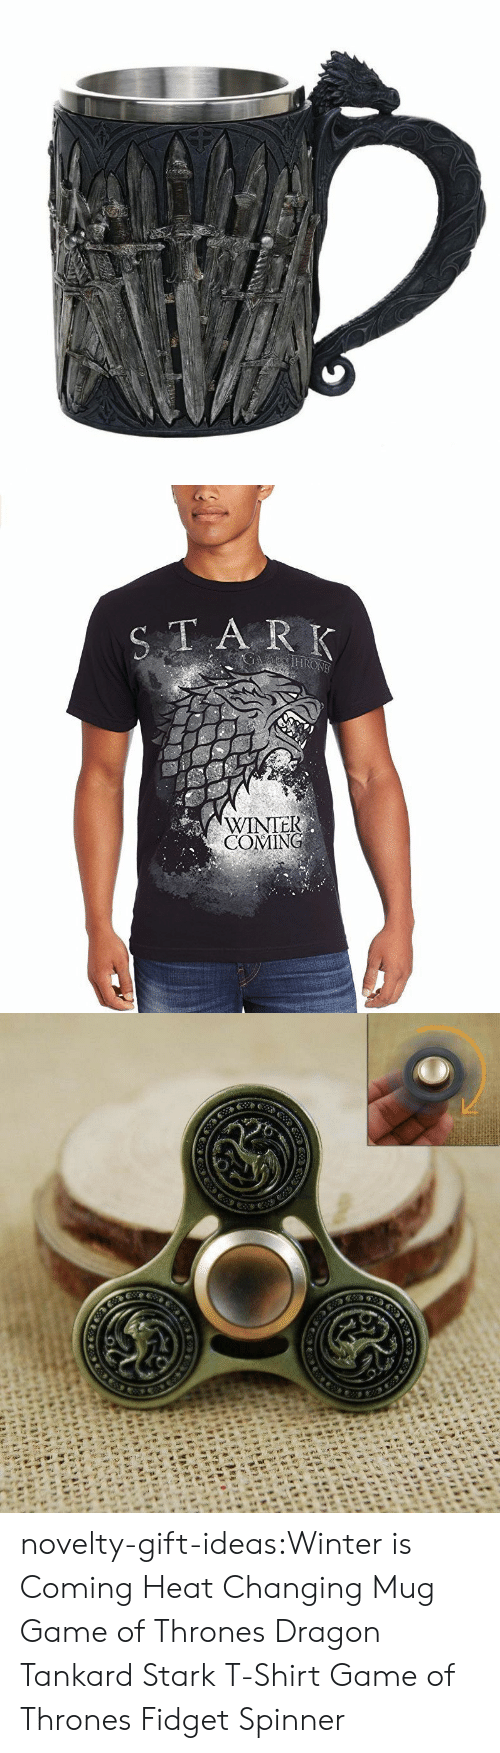 Game of Thrones, Tumblr, and Winter: TA R K  WINTEK  COMING novelty-gift-ideas:Winter is Coming Heat Changing Mug  Game of Thrones Dragon Tankard    Stark T-Shirt Game of Thrones Fidget Spinner